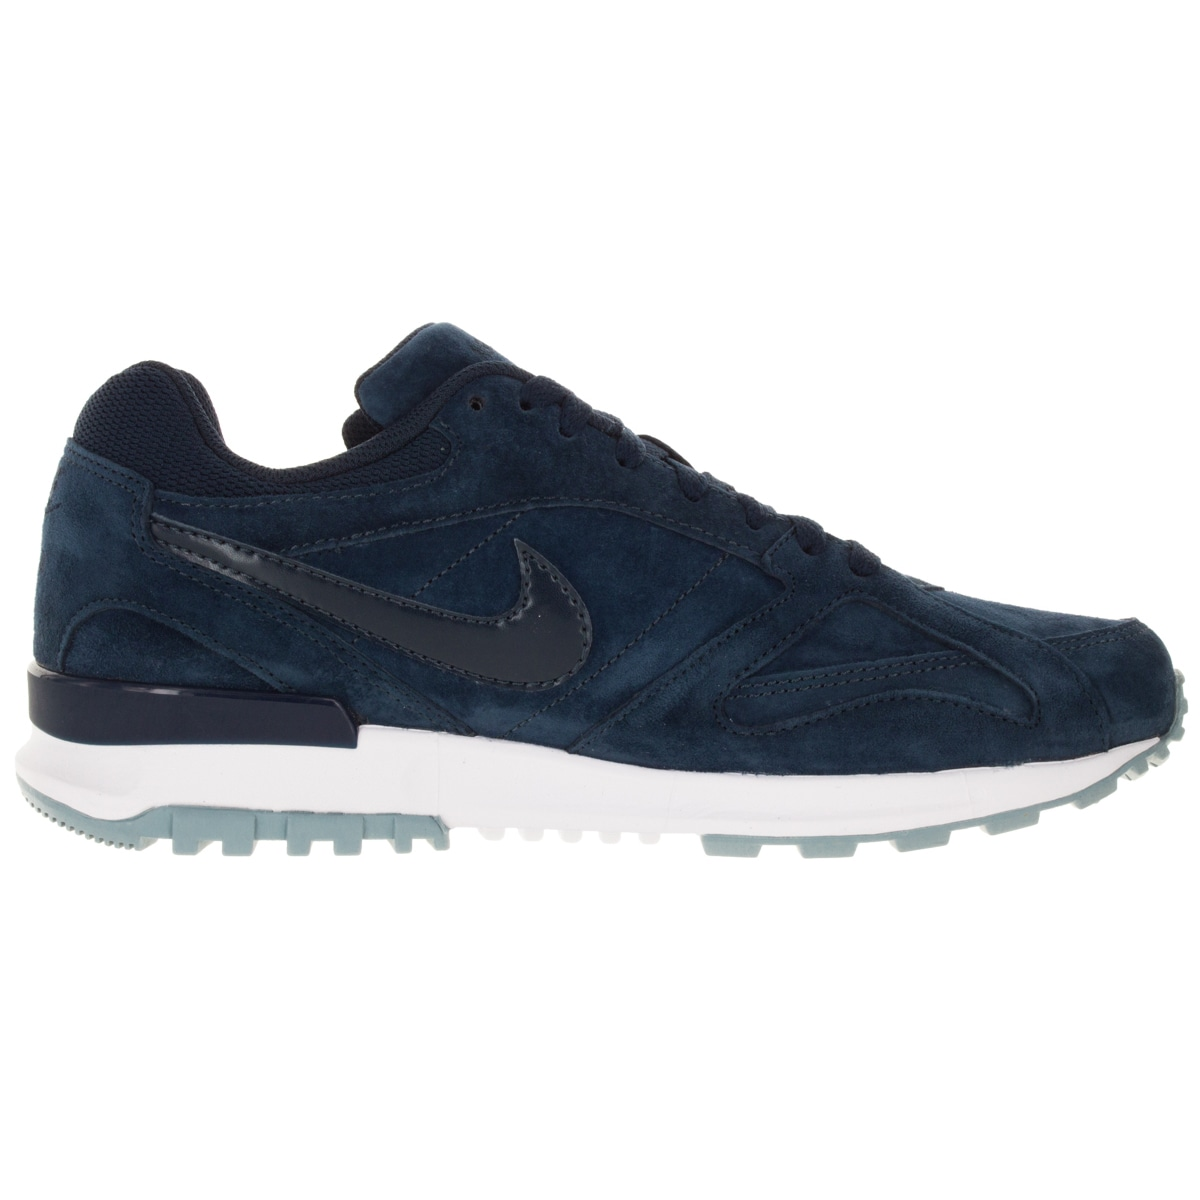 79f583427a07 Shop Nike Men s Air Pegasus New Racer Prm Obsidian Obsidian White Bl Running  Shoe - Free Shipping Today - Overstock - 12328719